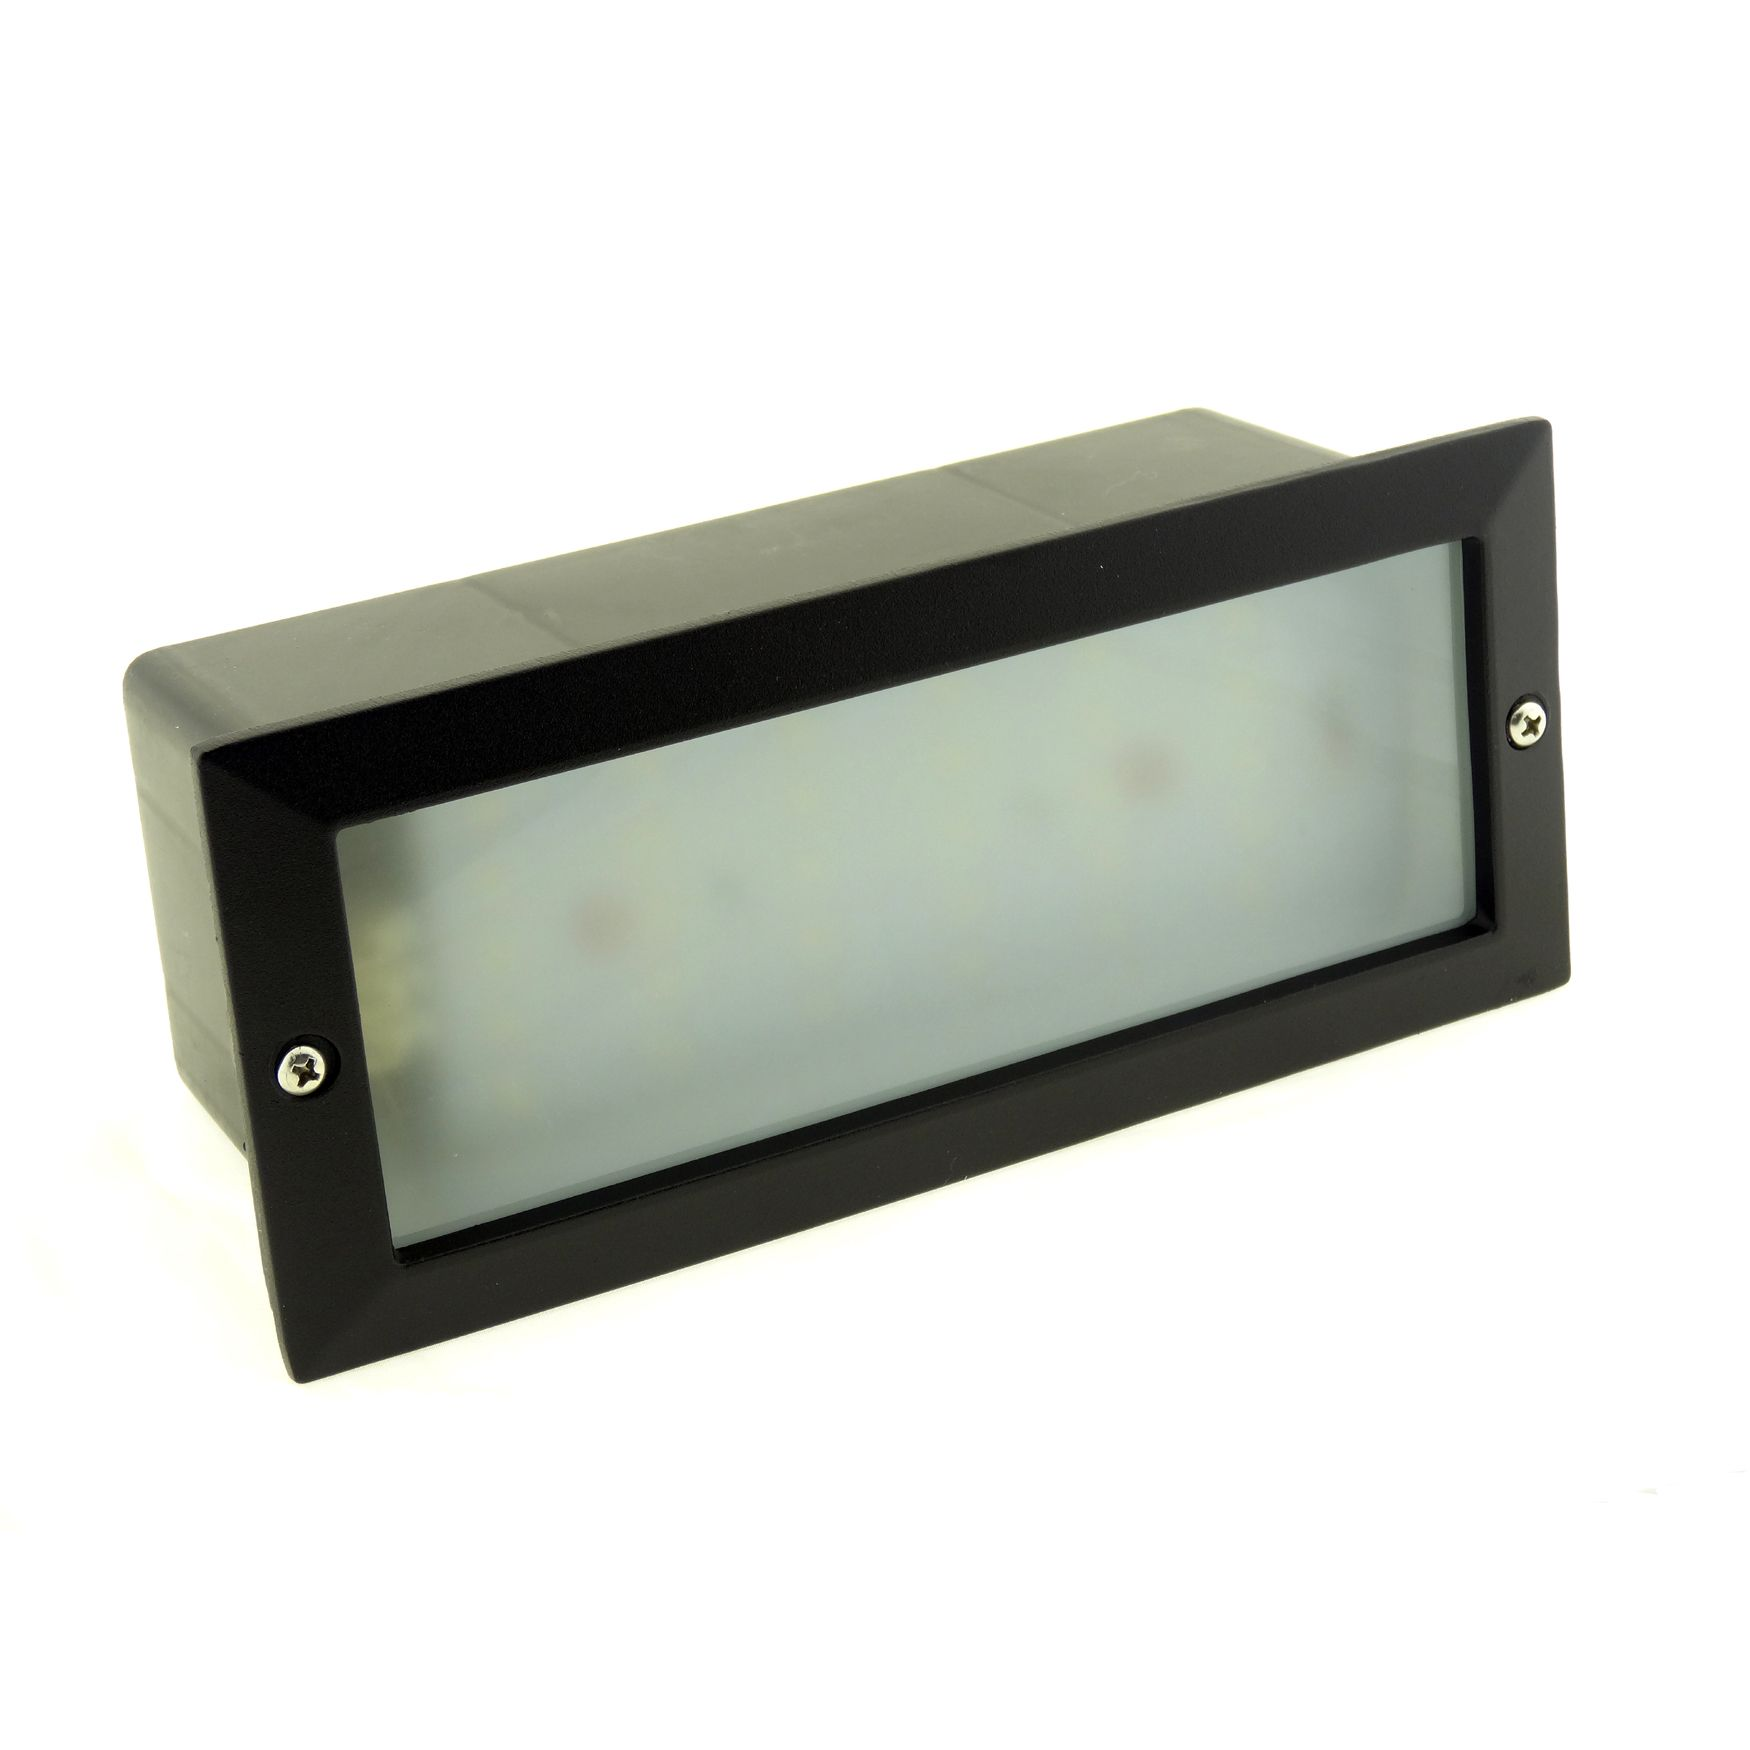 Led Wall Lights Garden : Modern White LED Outdoor Garden Recessed Brick Wall Light Super Bright IP54